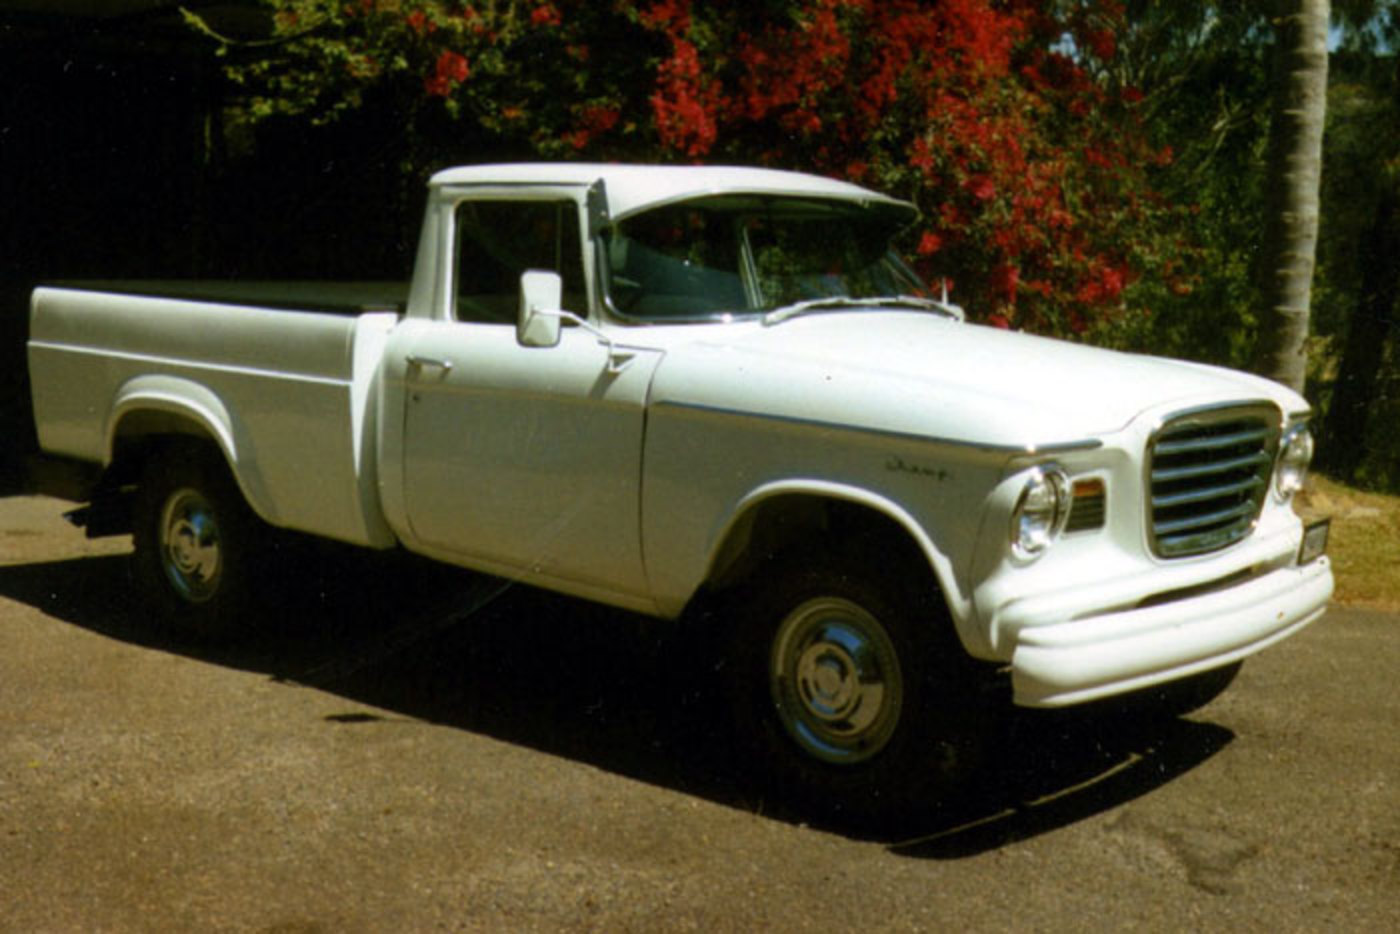 Truckstop Classic: 1960 Studebaker Champ – Needs Some Fresh Horsepower